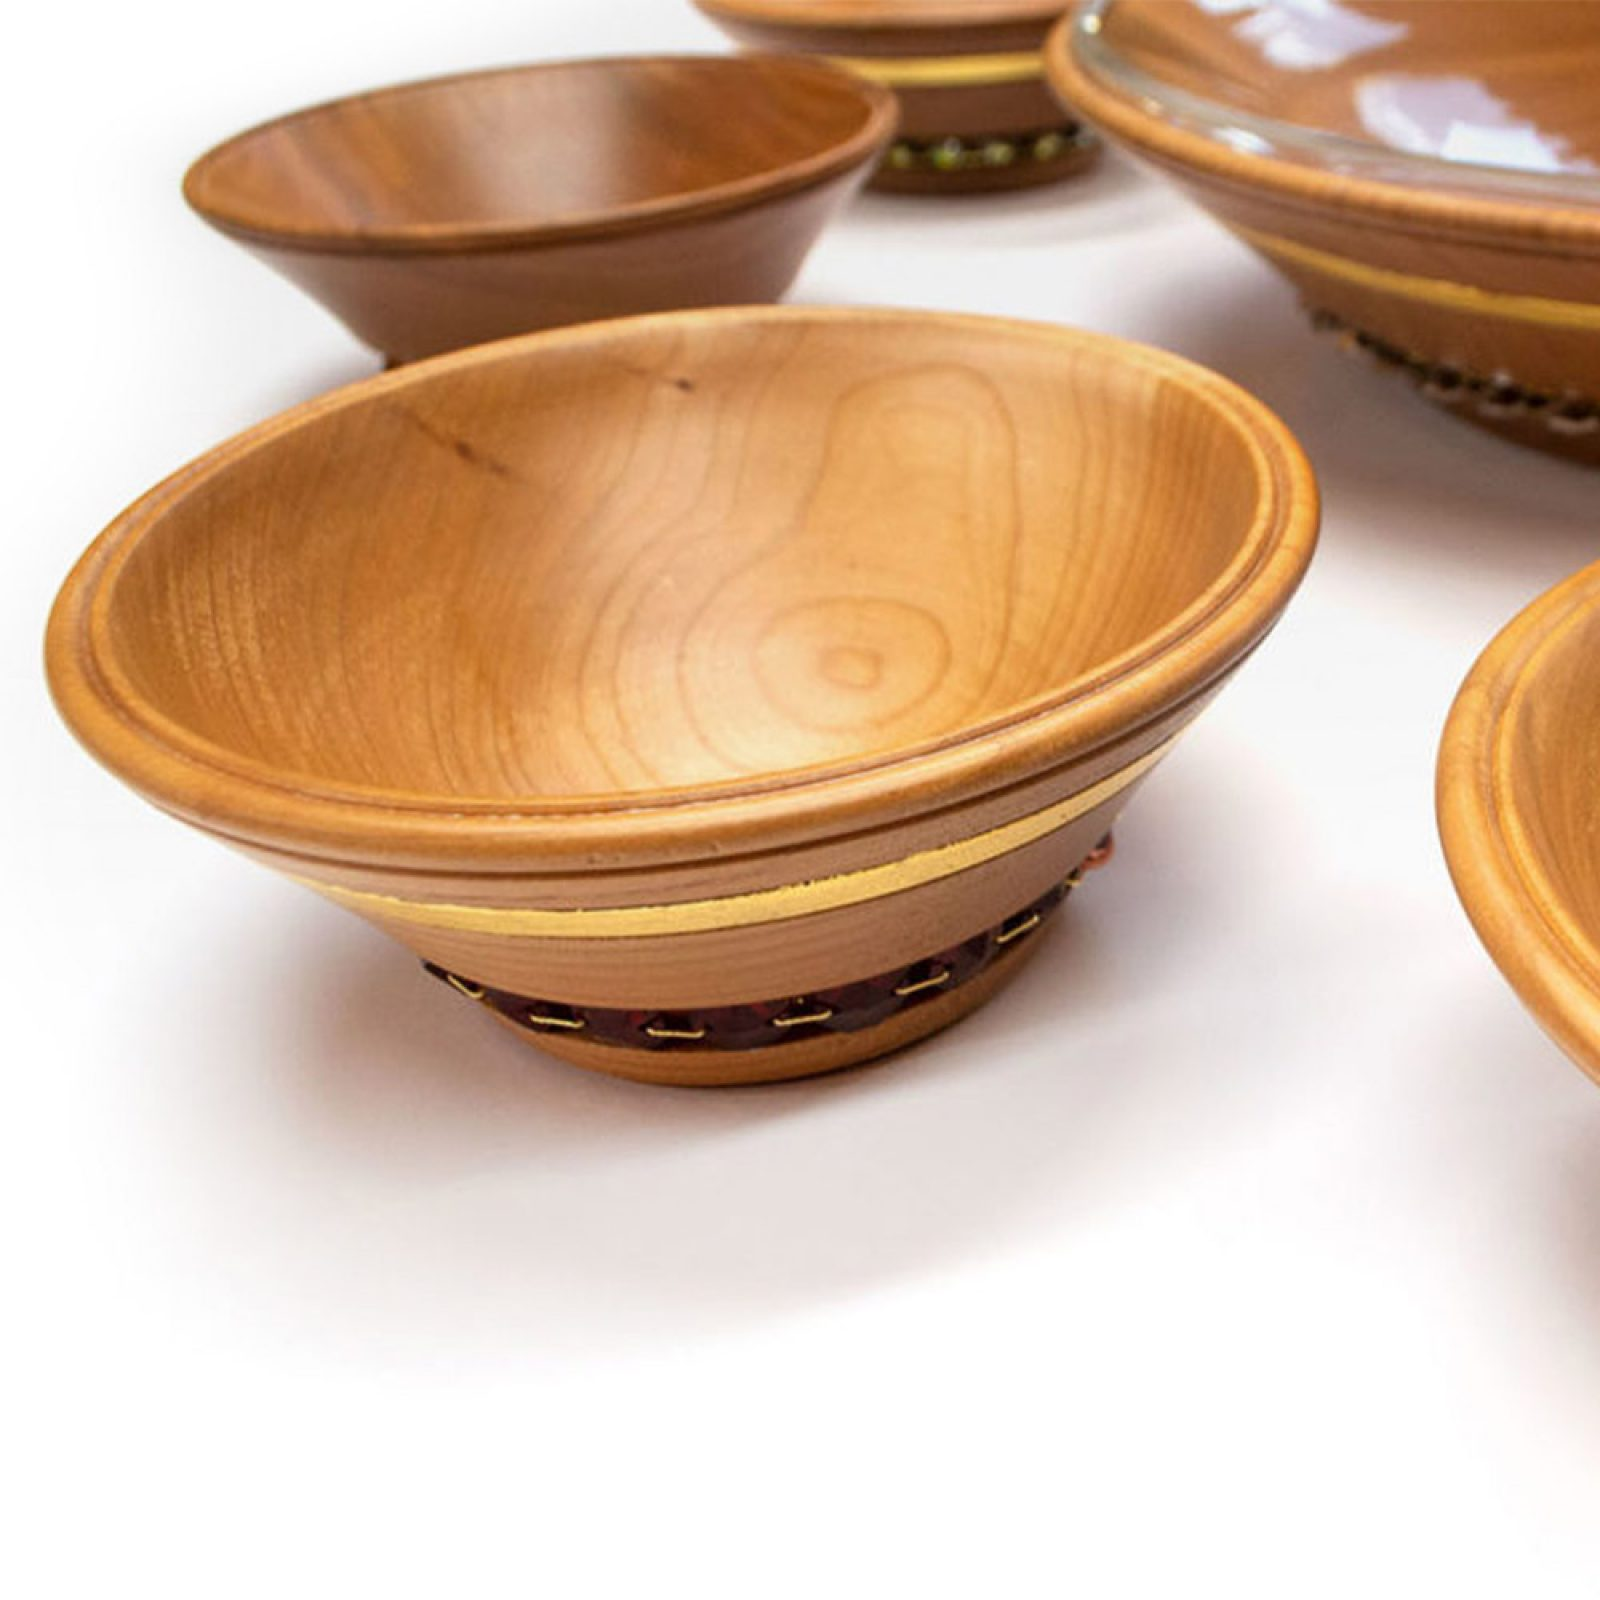 Kasida Oase - Hand crafted from cherry wood | Natalis Luxus